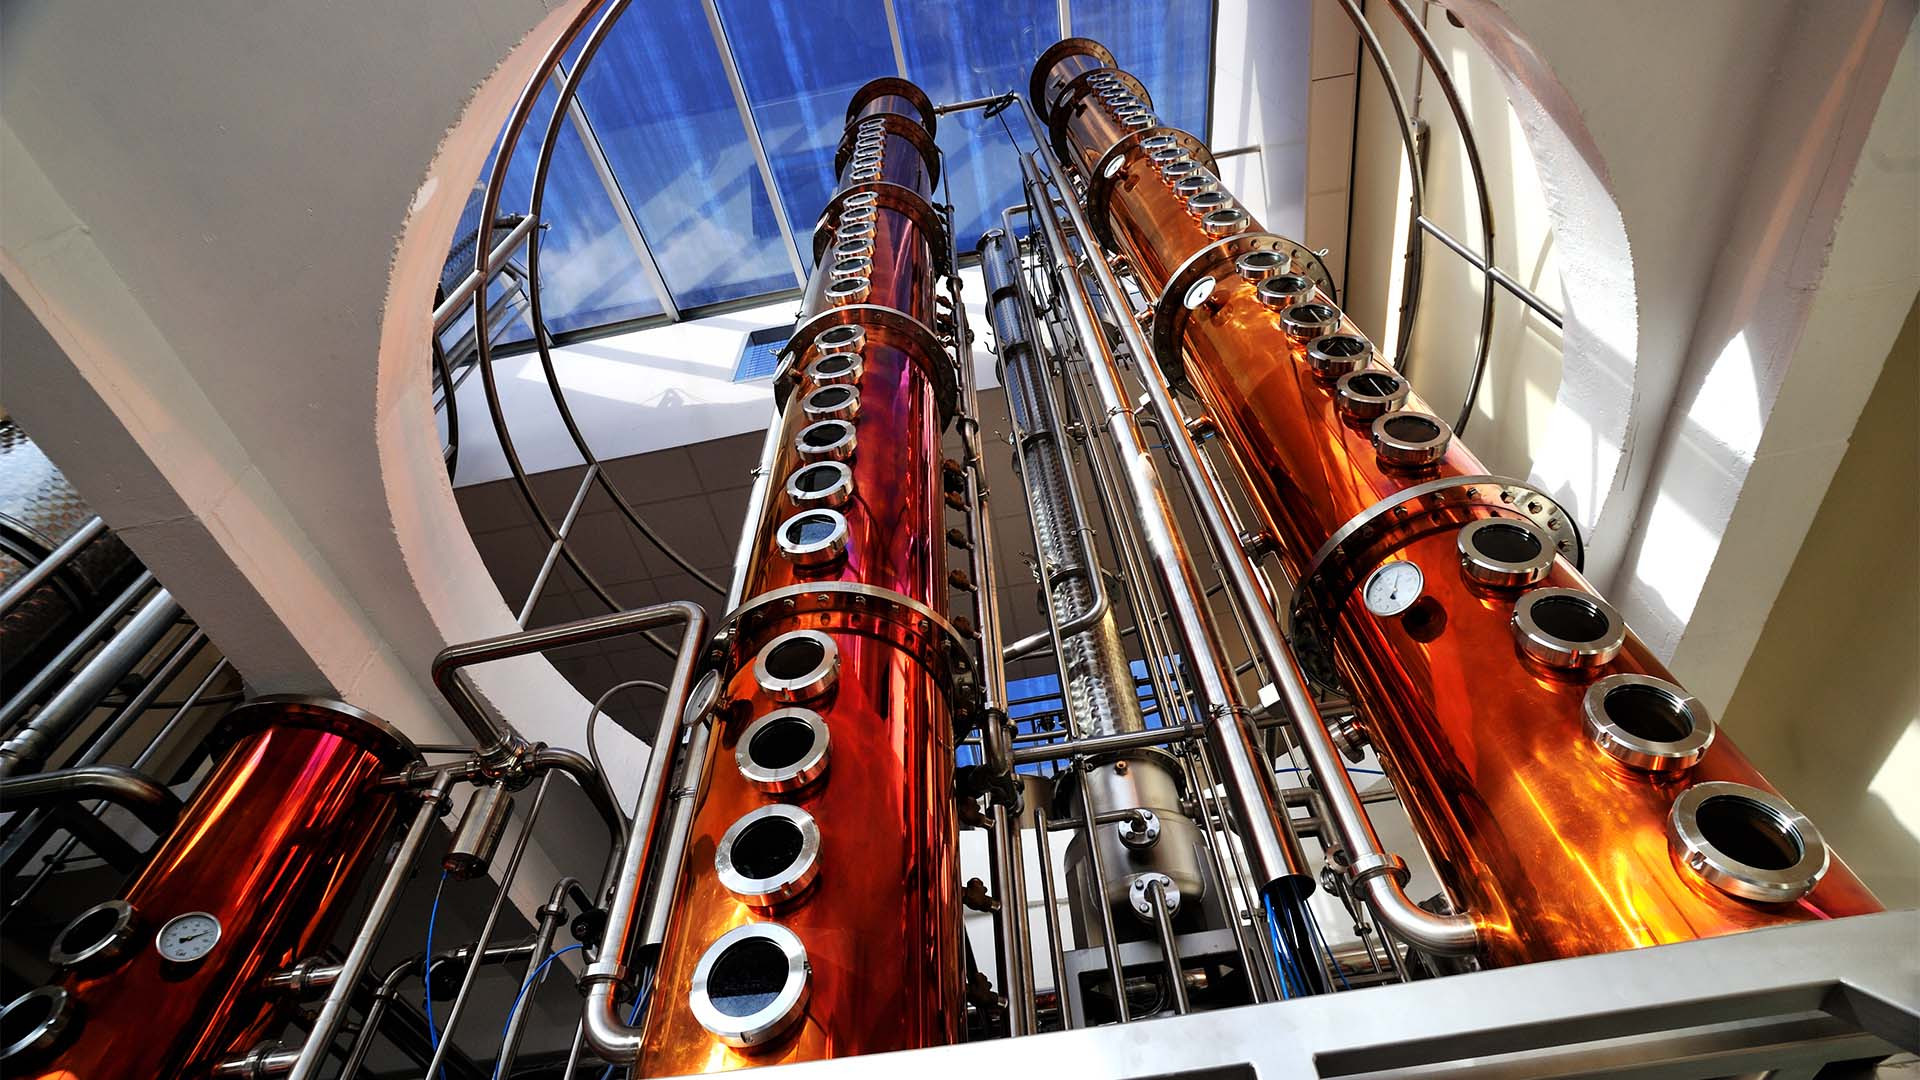 Copper stills at Adnams distillery, Southwold